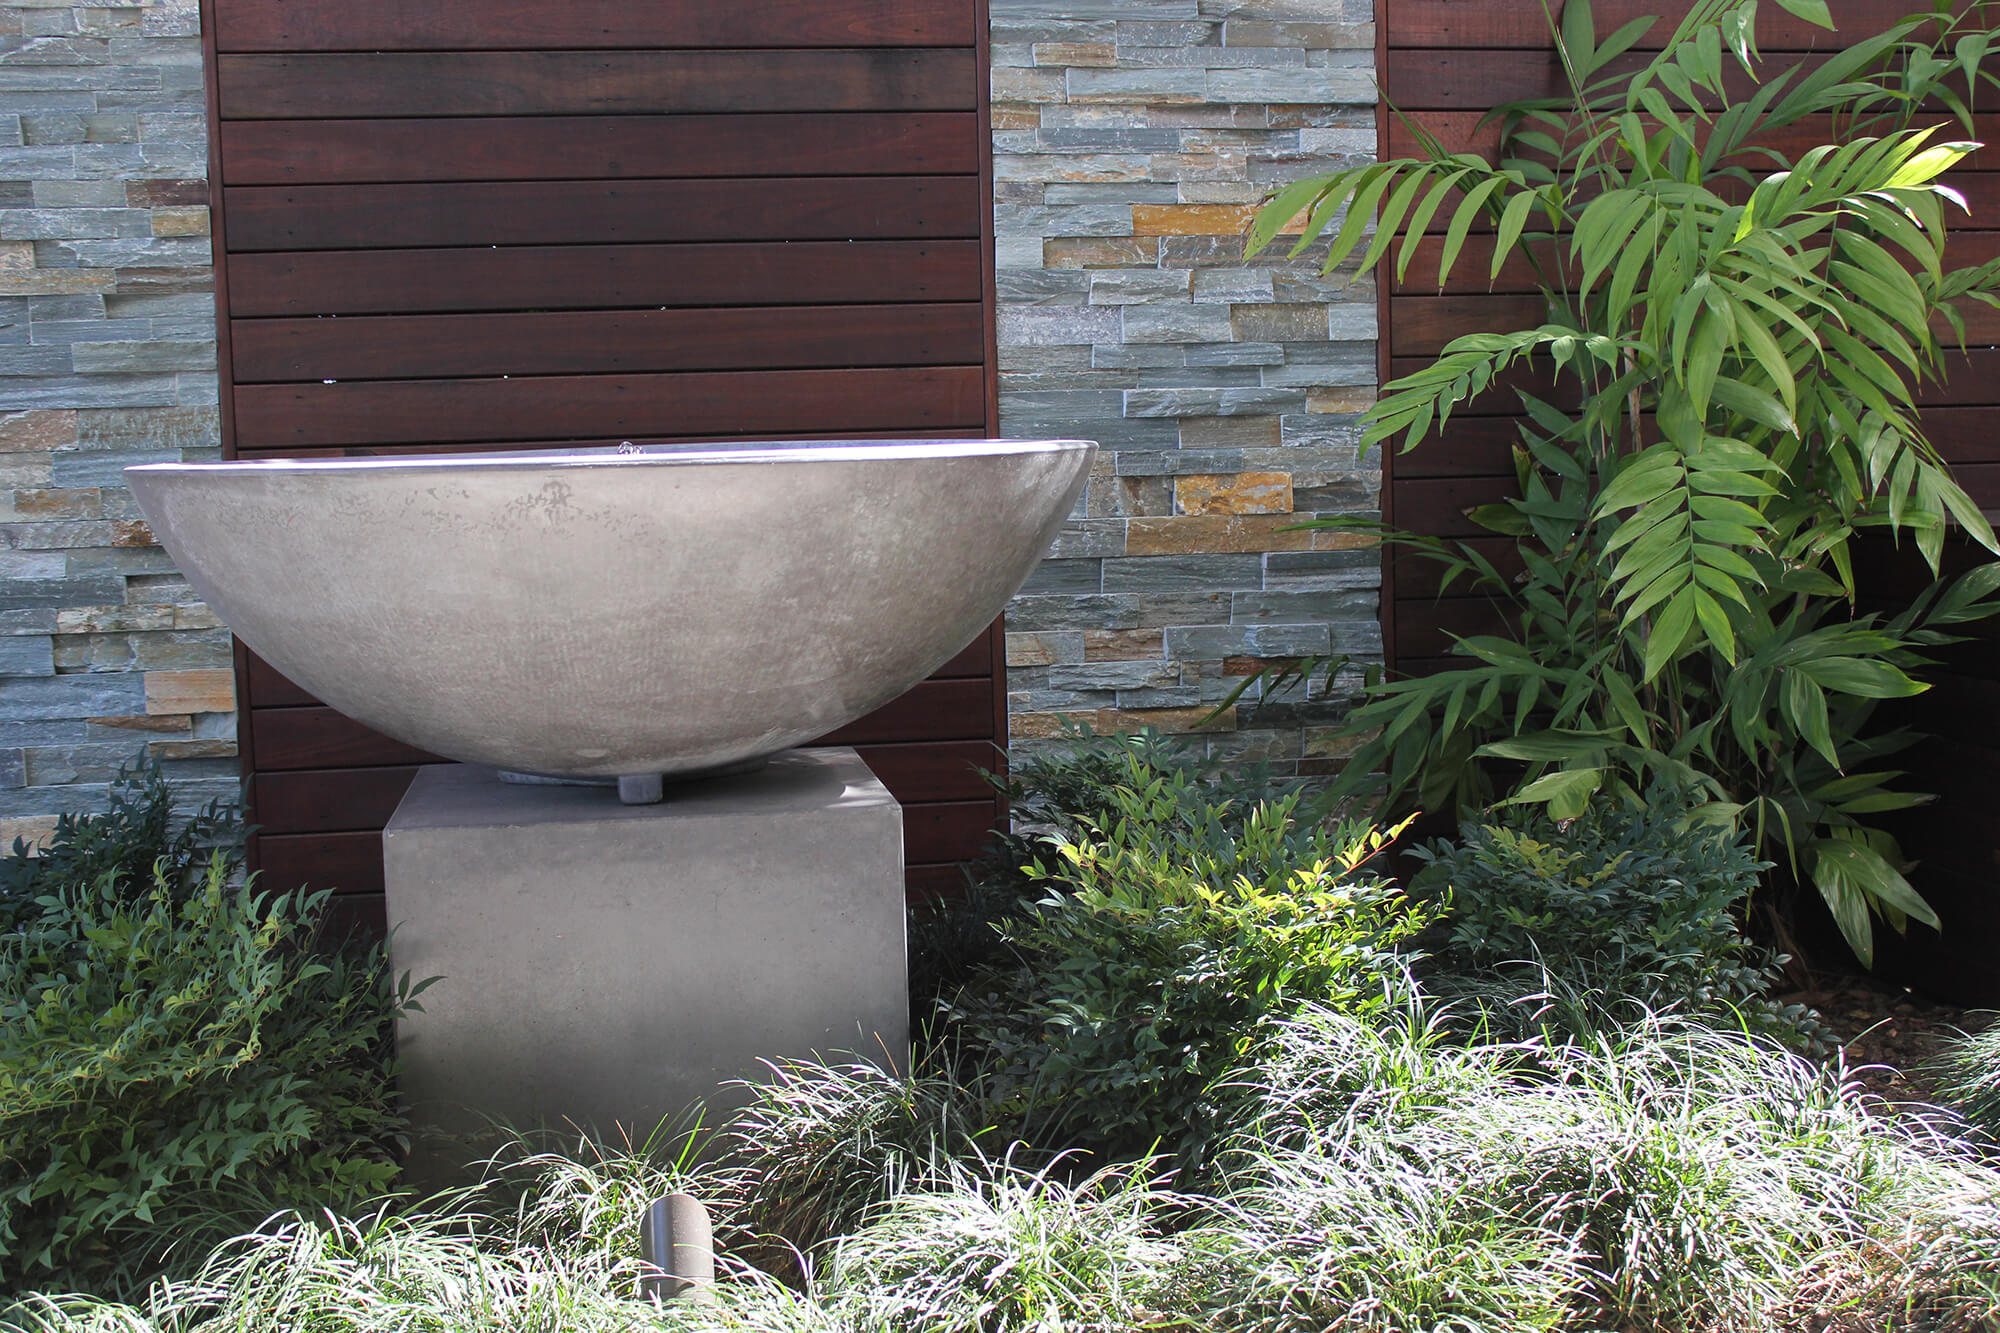 ascot outdoor lighting and water feature bowl